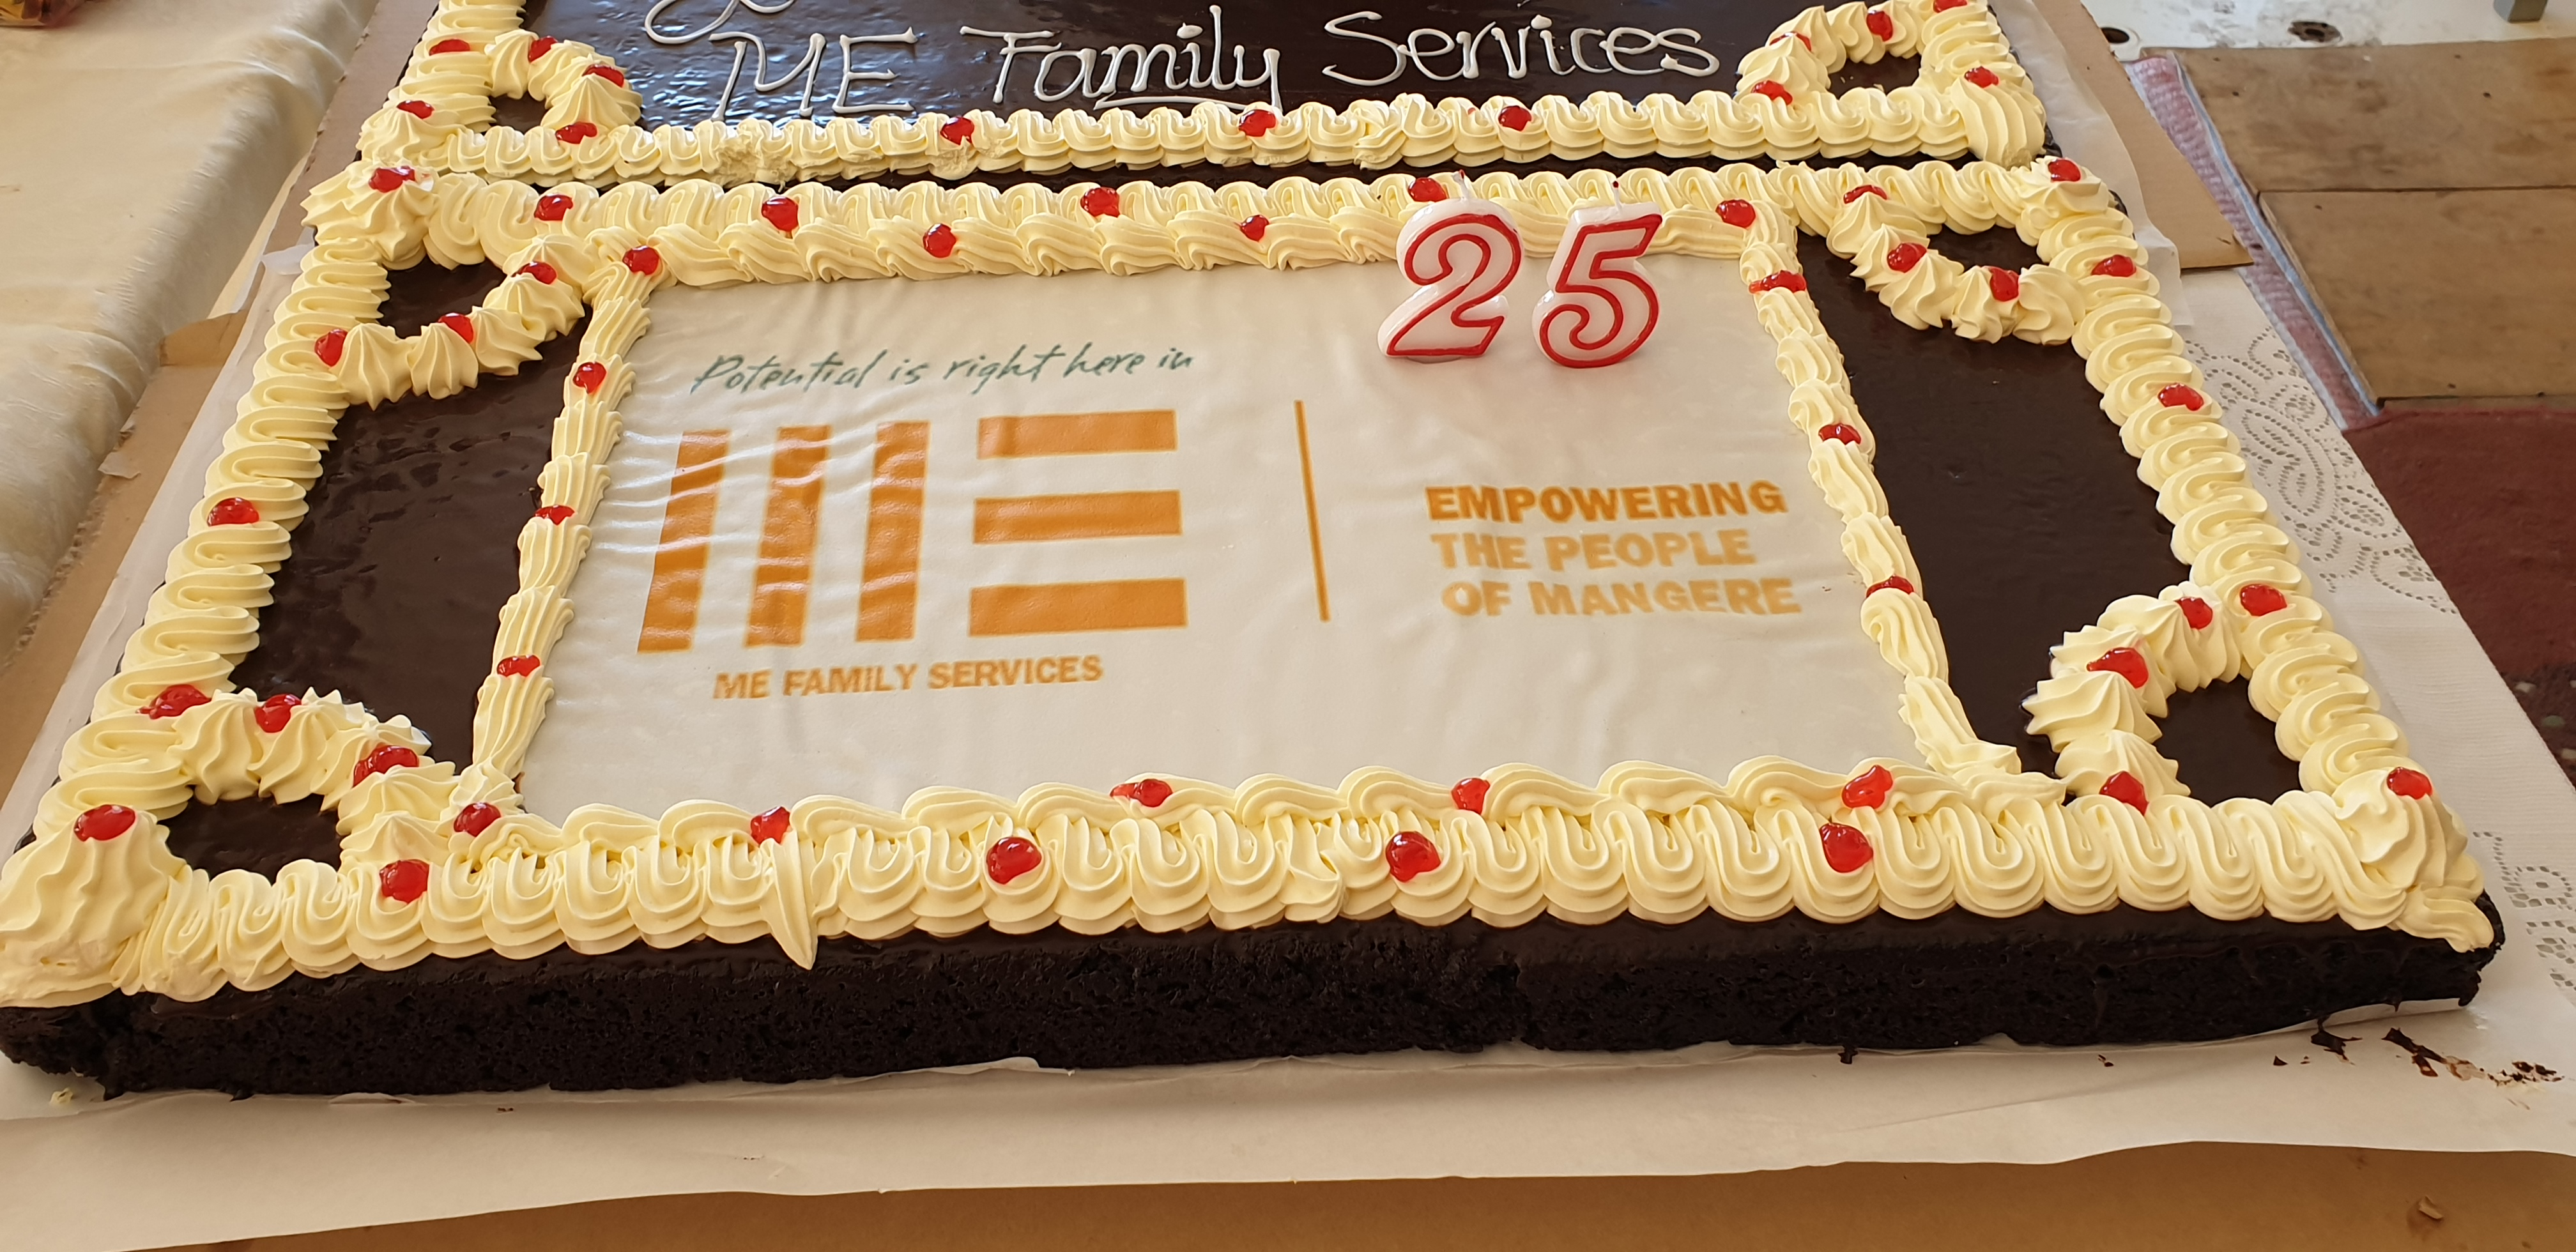 ME Family Services turns 25